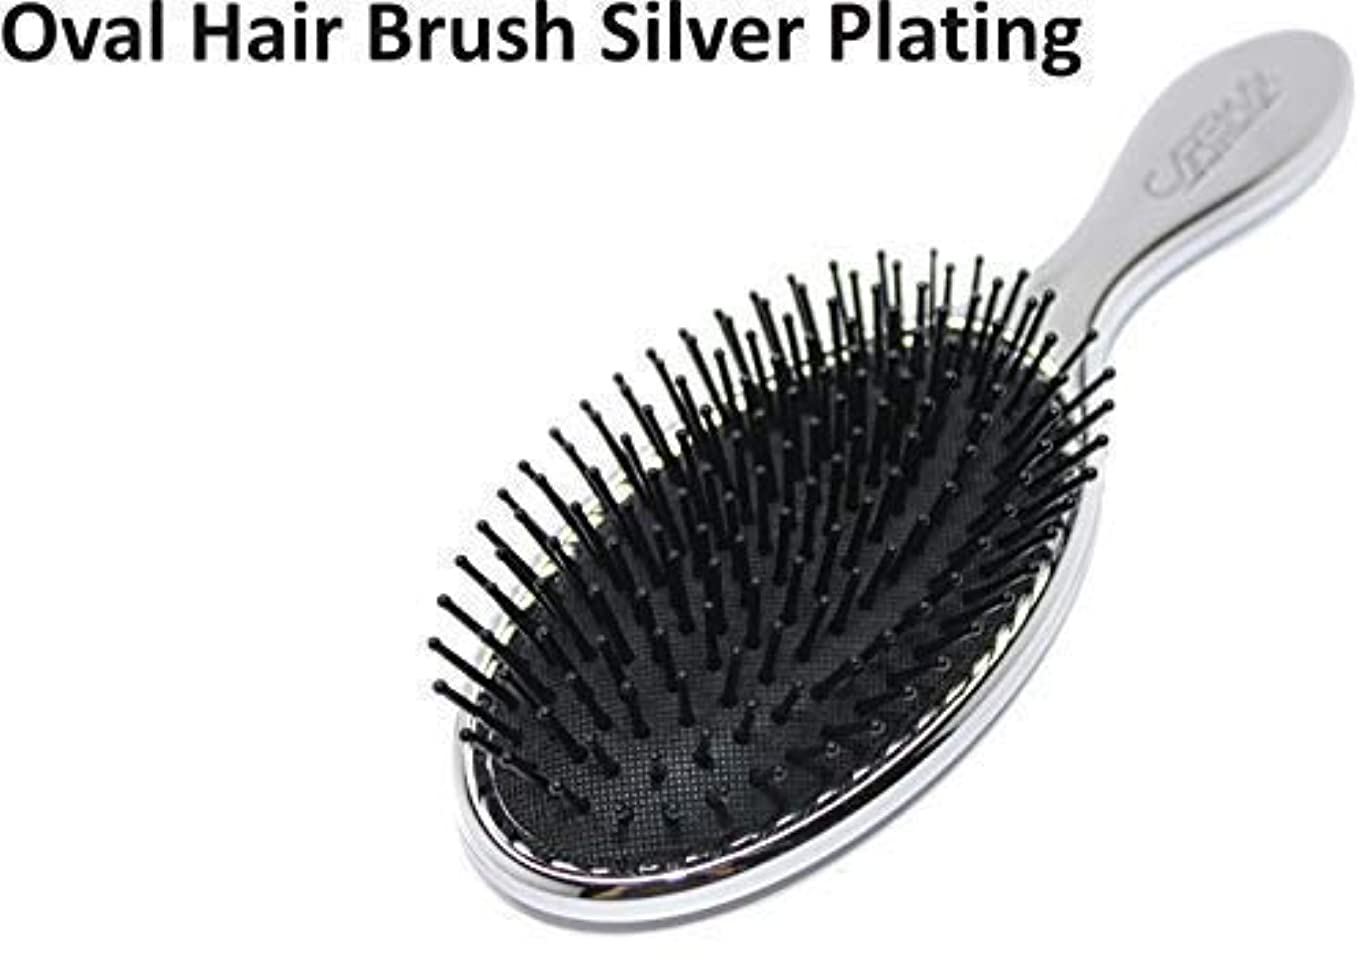 Hair Brush Soft Bristles Glide Through Tangles With Ease For All Hairs.